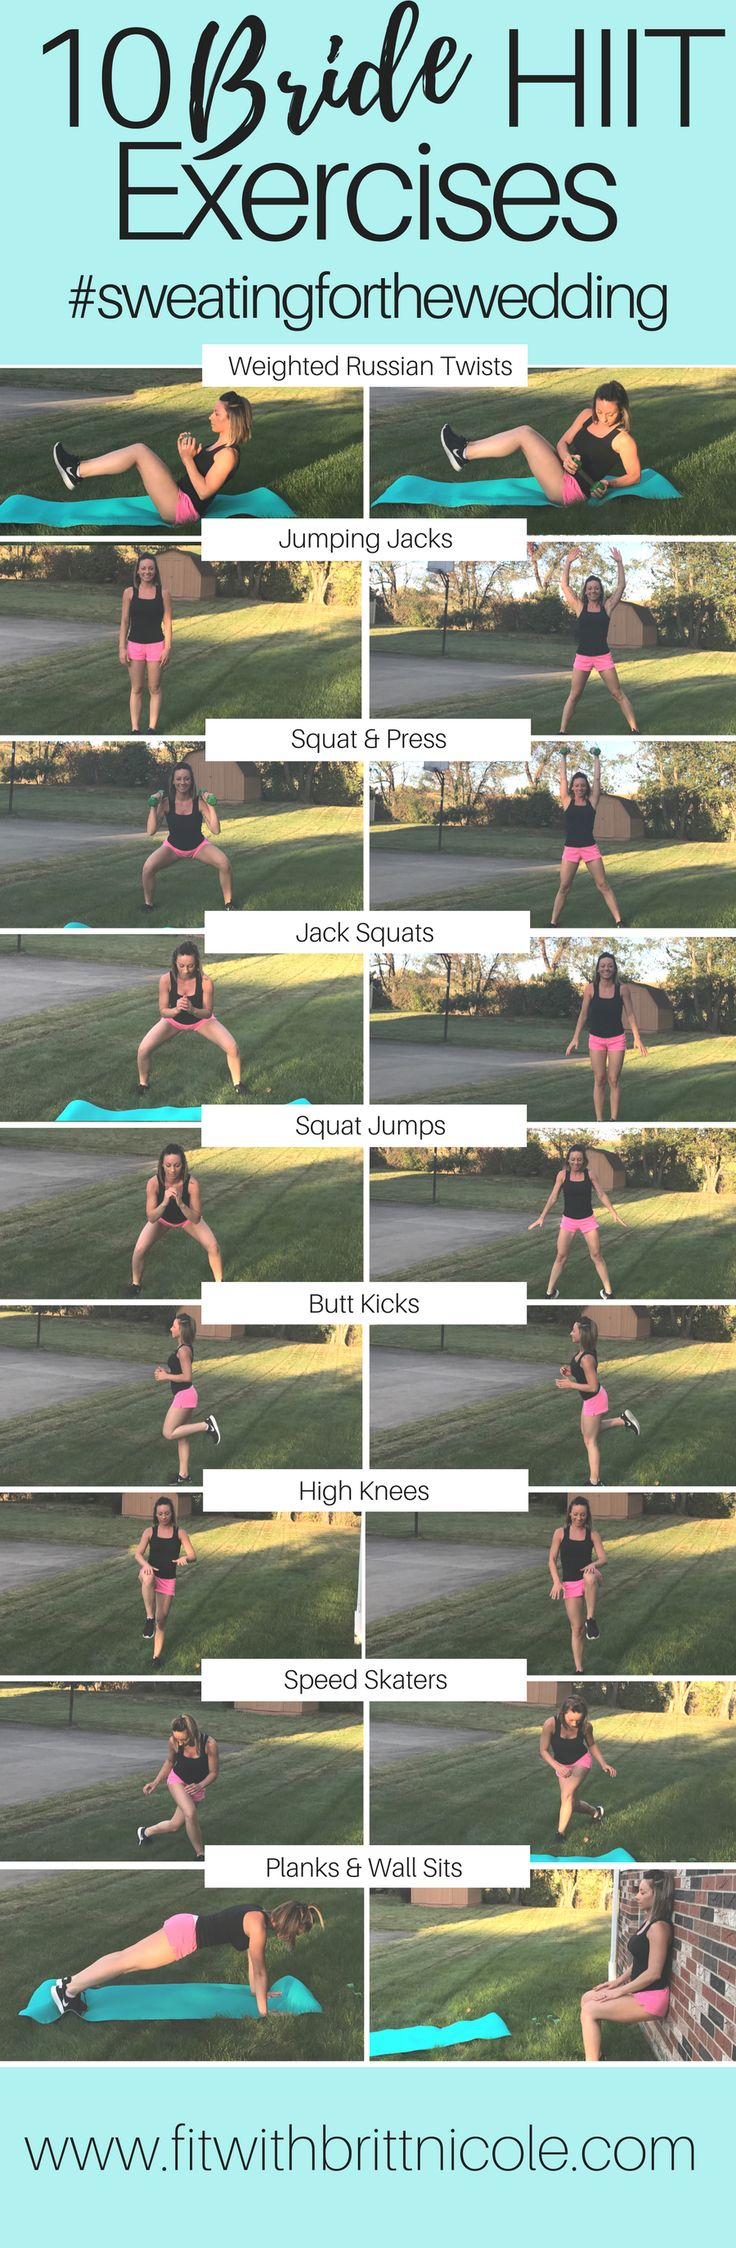 Wedding weight loss HIIT workouts! Start sweating and toning for special events you have coming up with these fat torching HIIT exercises!